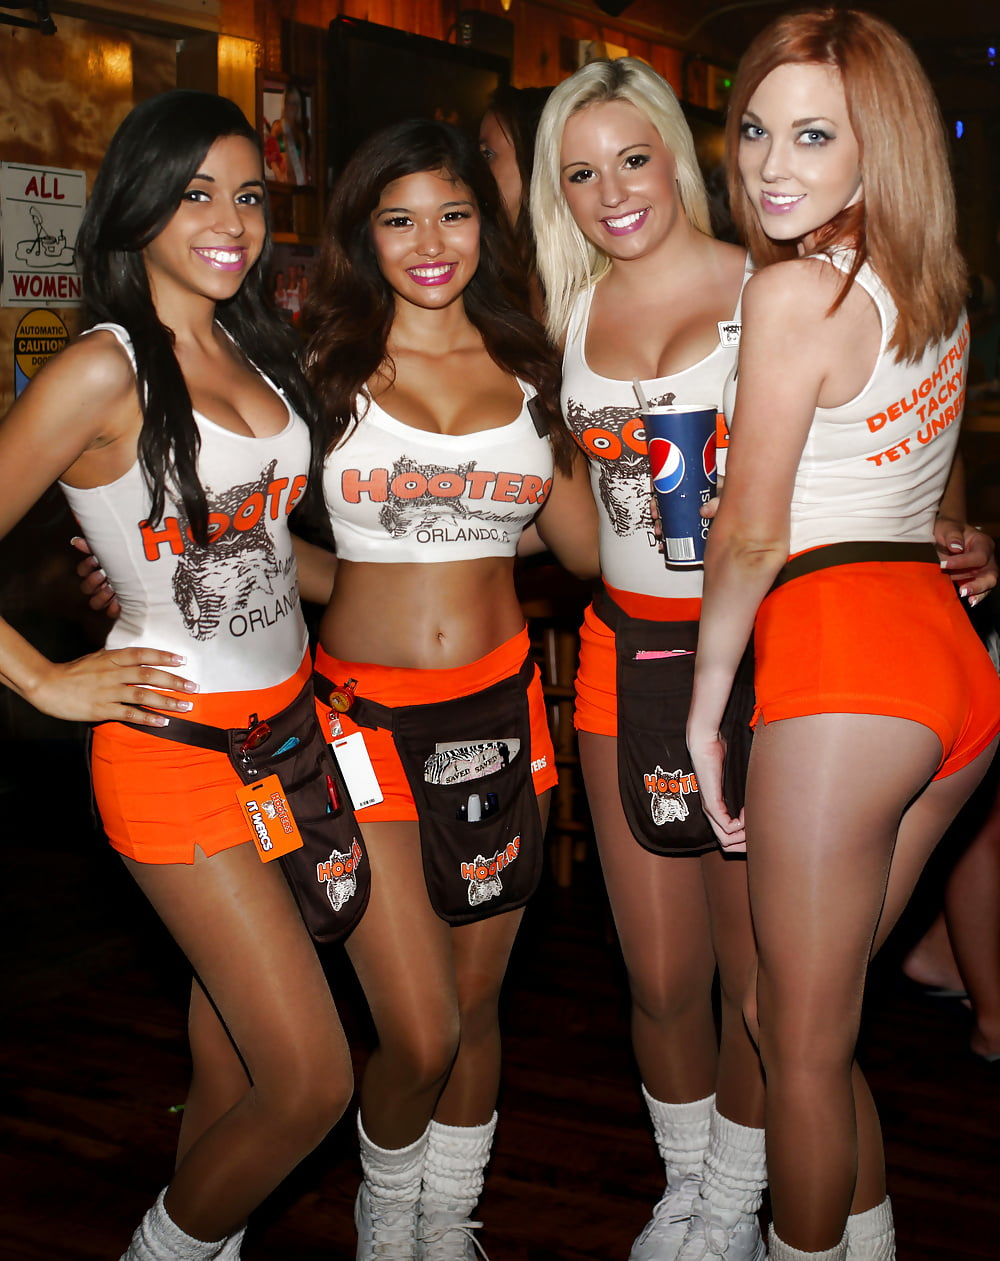 Sexy hooters girl with glasses wearing hot pants